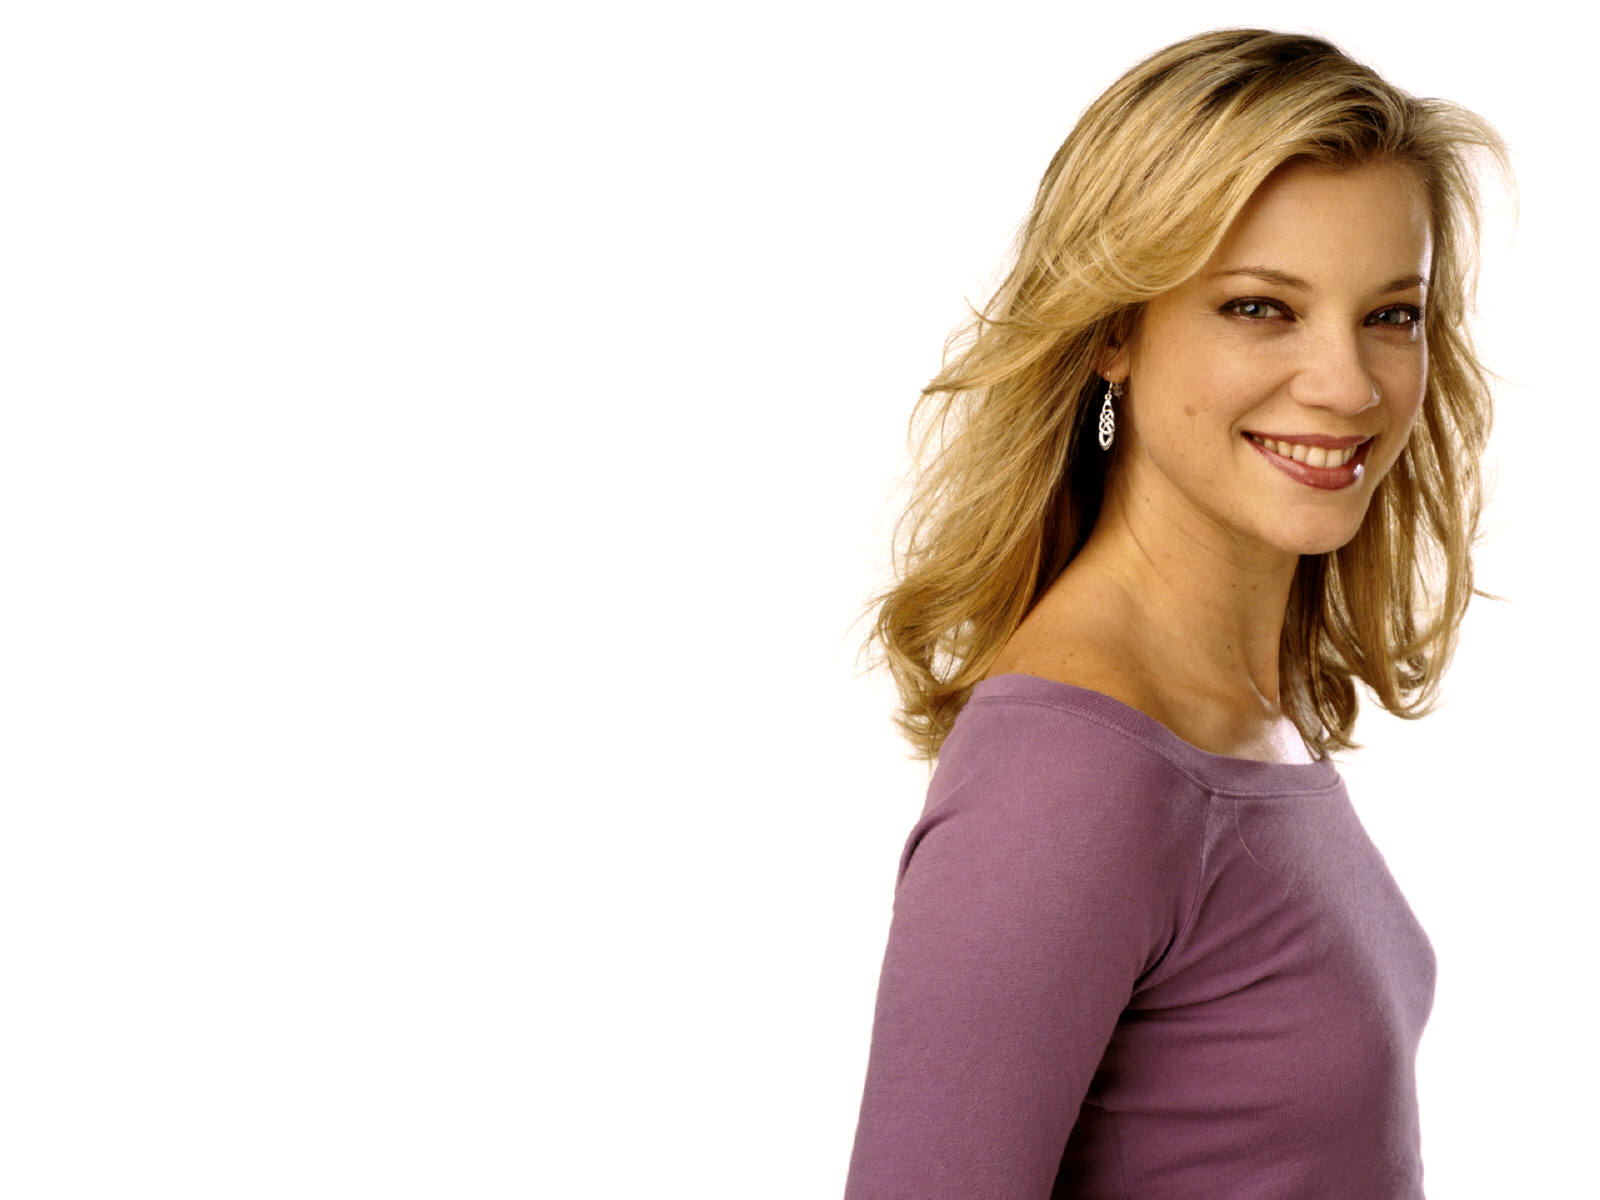 1600x1200 - Amy Smart Wallpapers 8